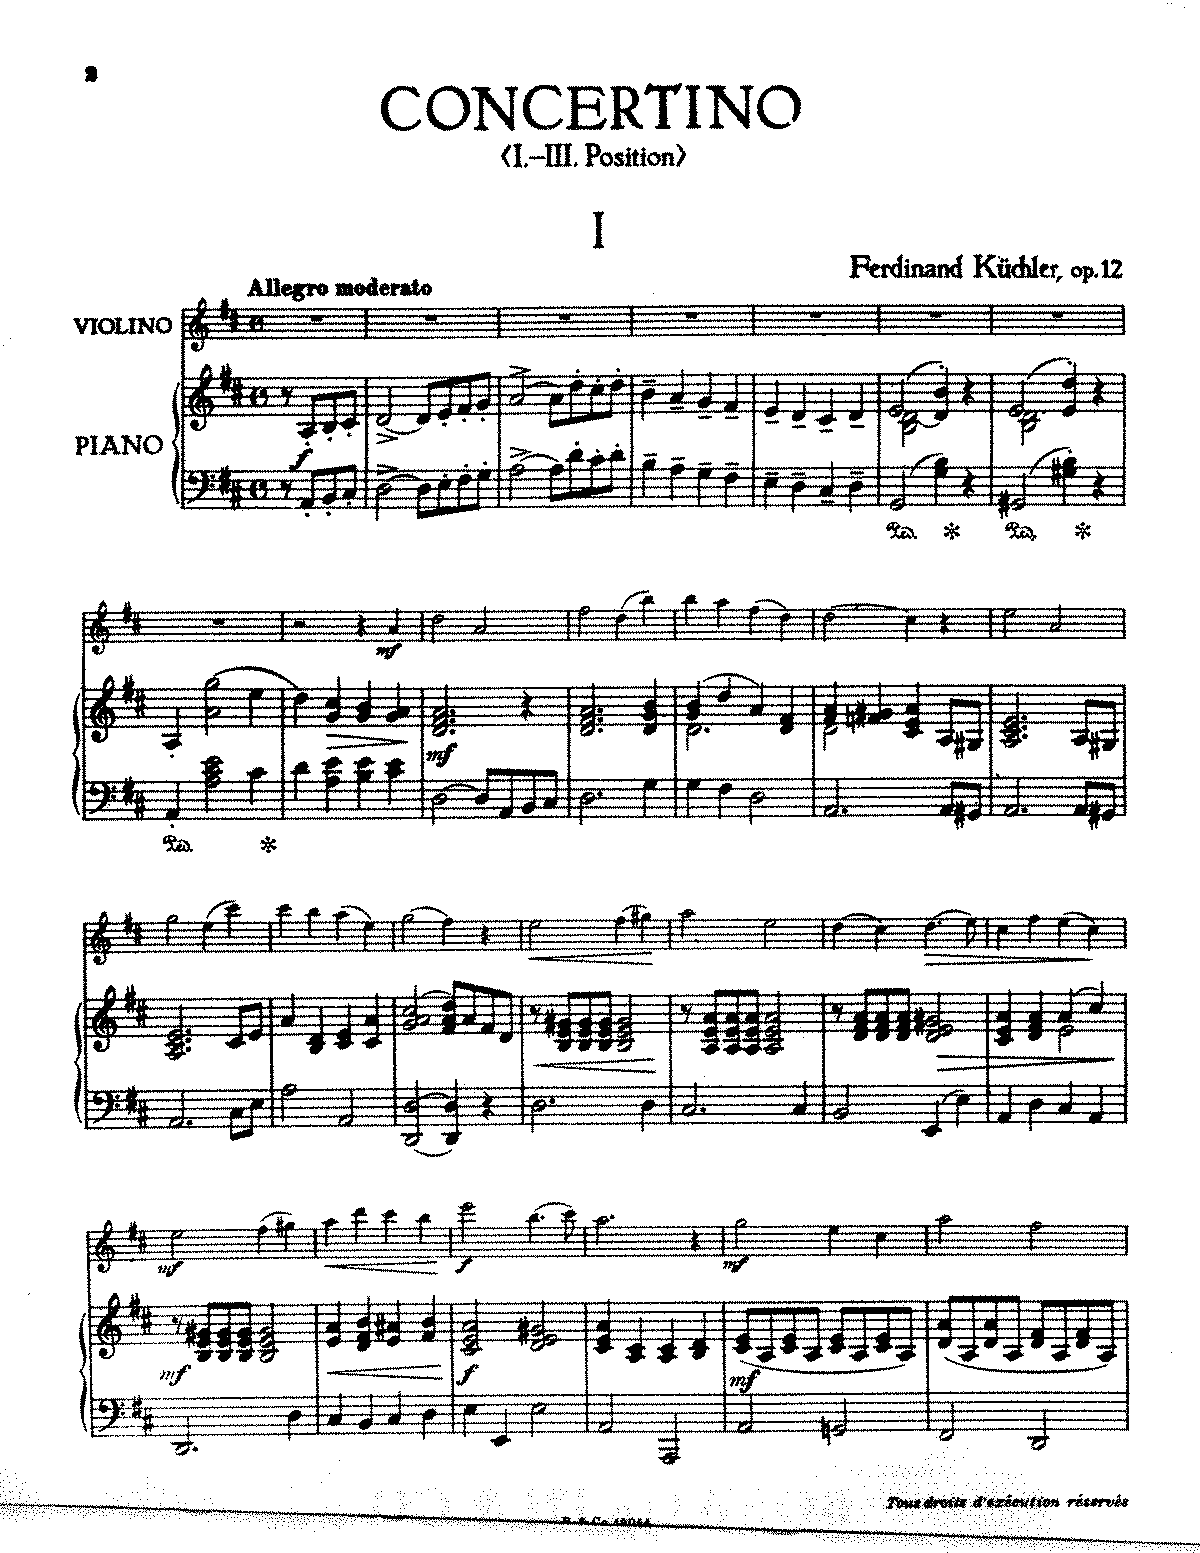 PMLP572845-Küchler Concertino Op.12 piano score.pdf